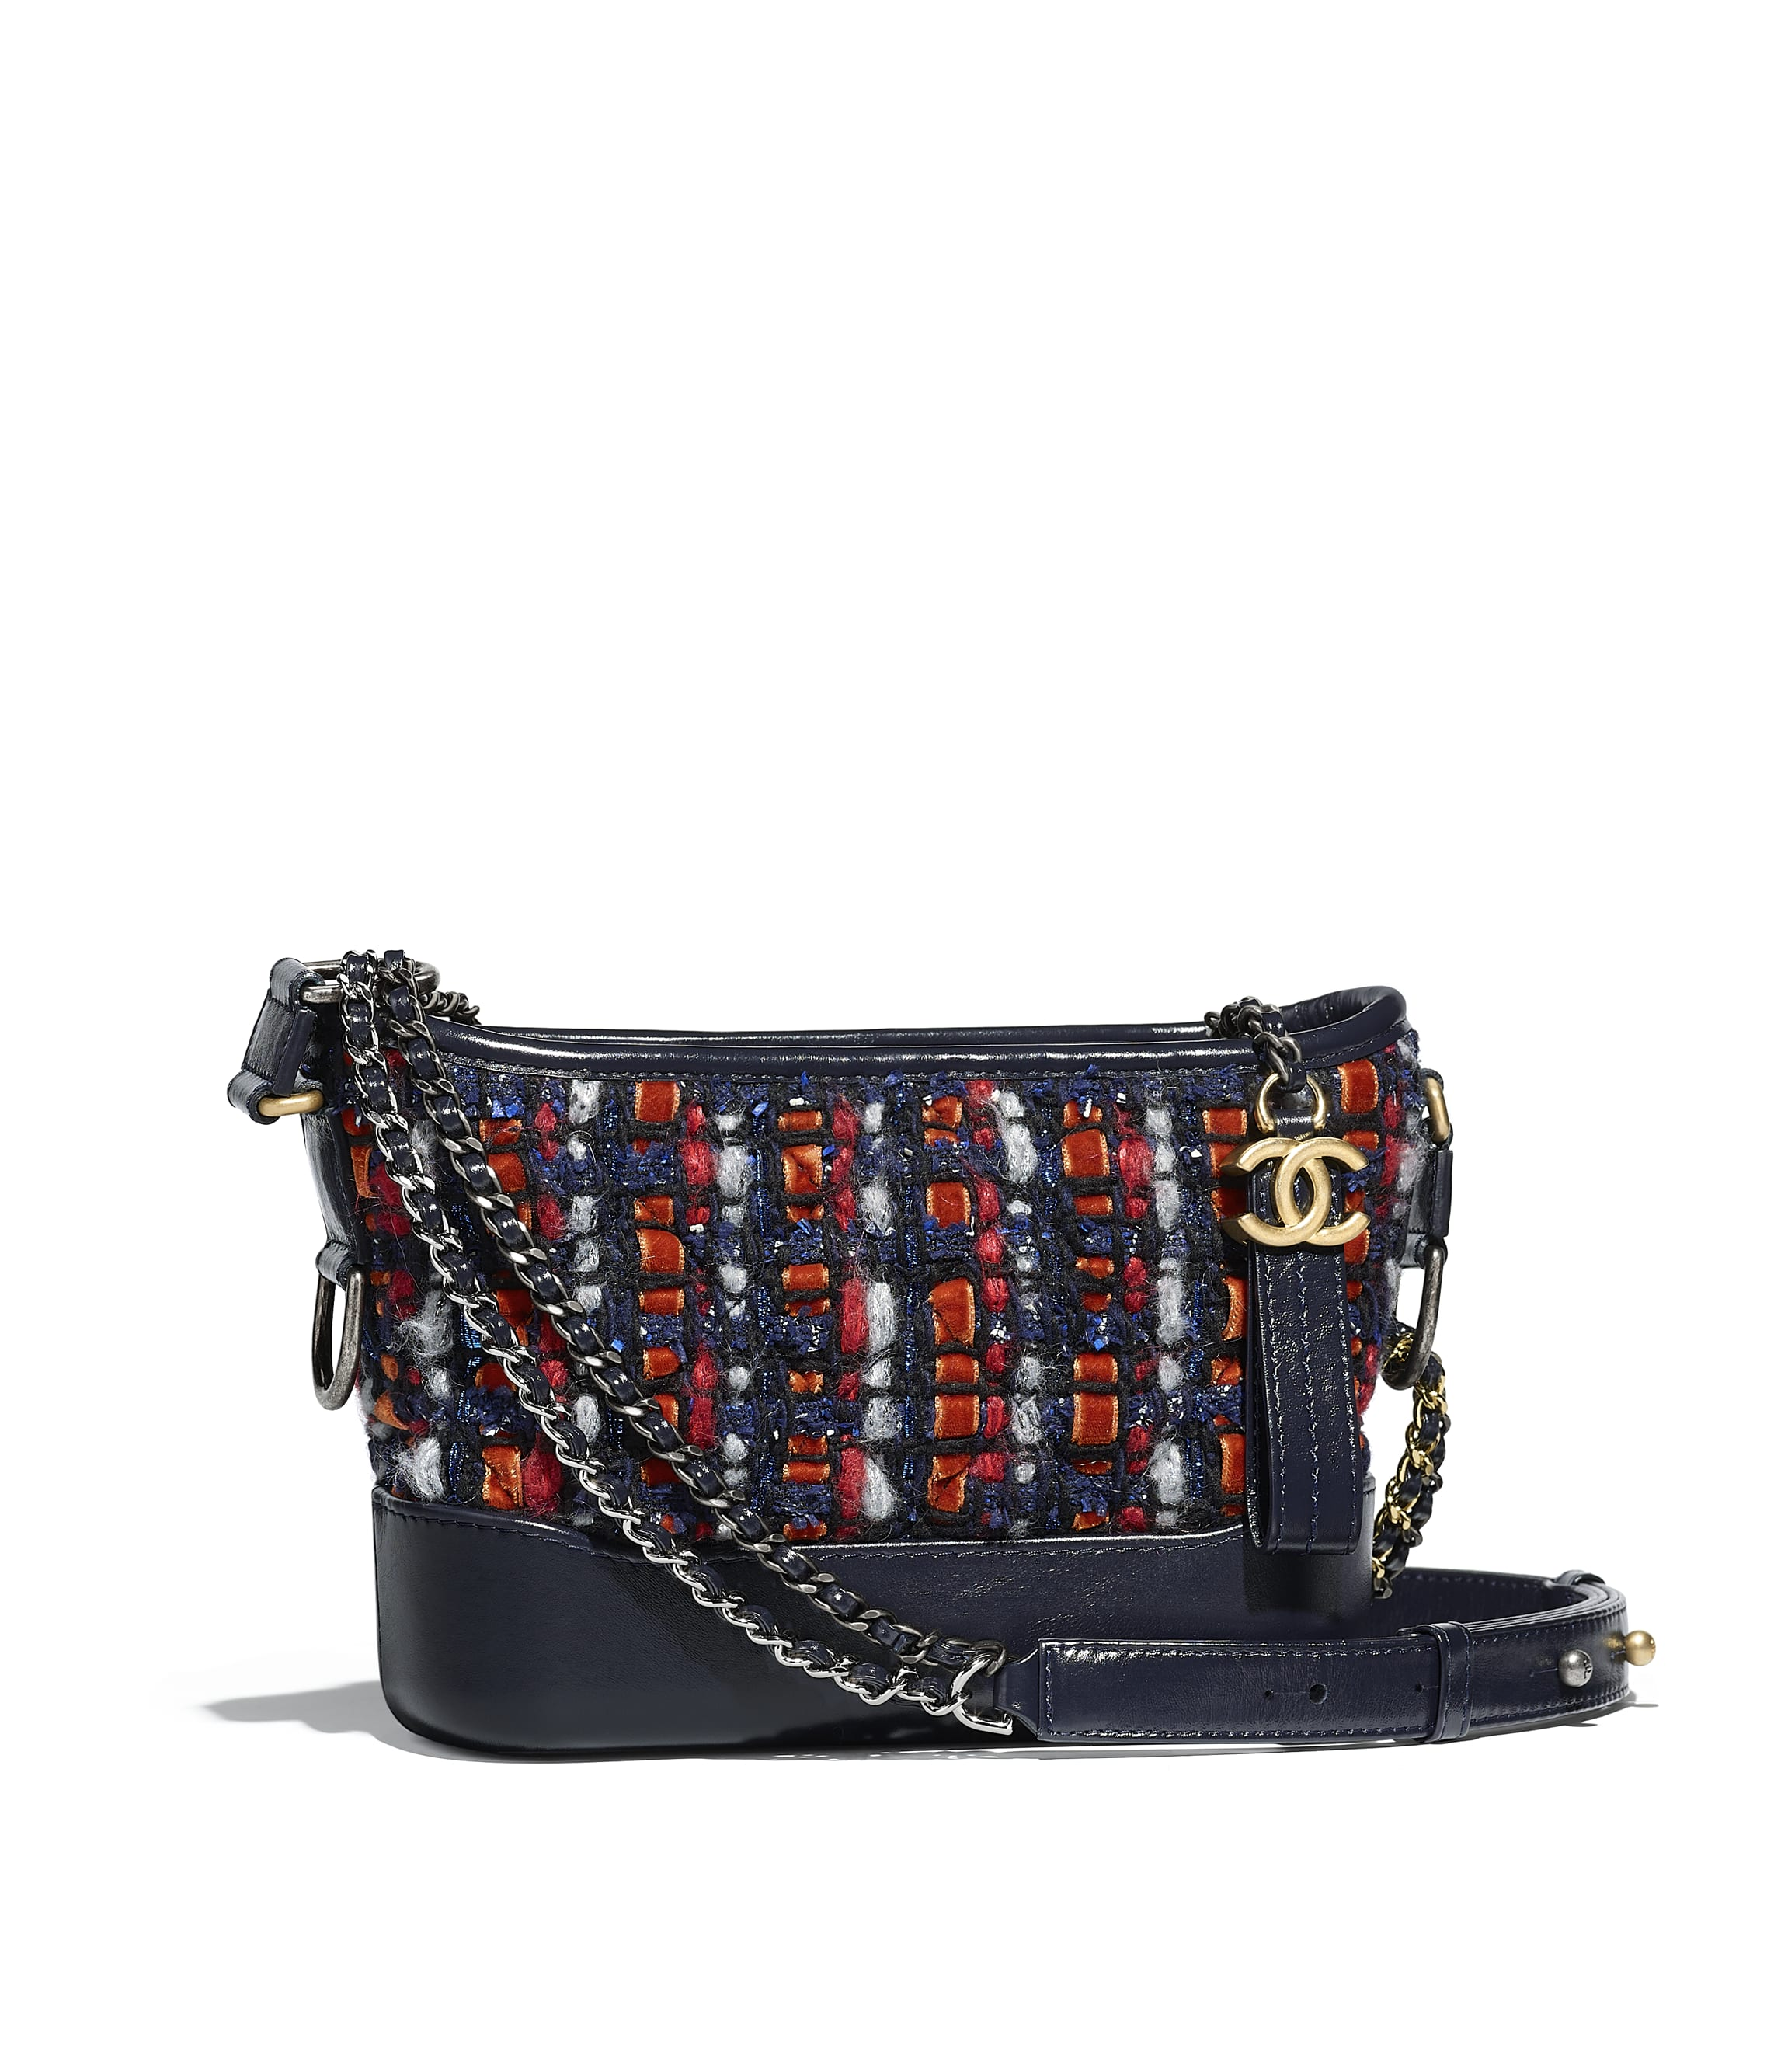 bag from brand purse international and find vanities bathroom online offers at compare hobo body color prices caramel cross leather luna